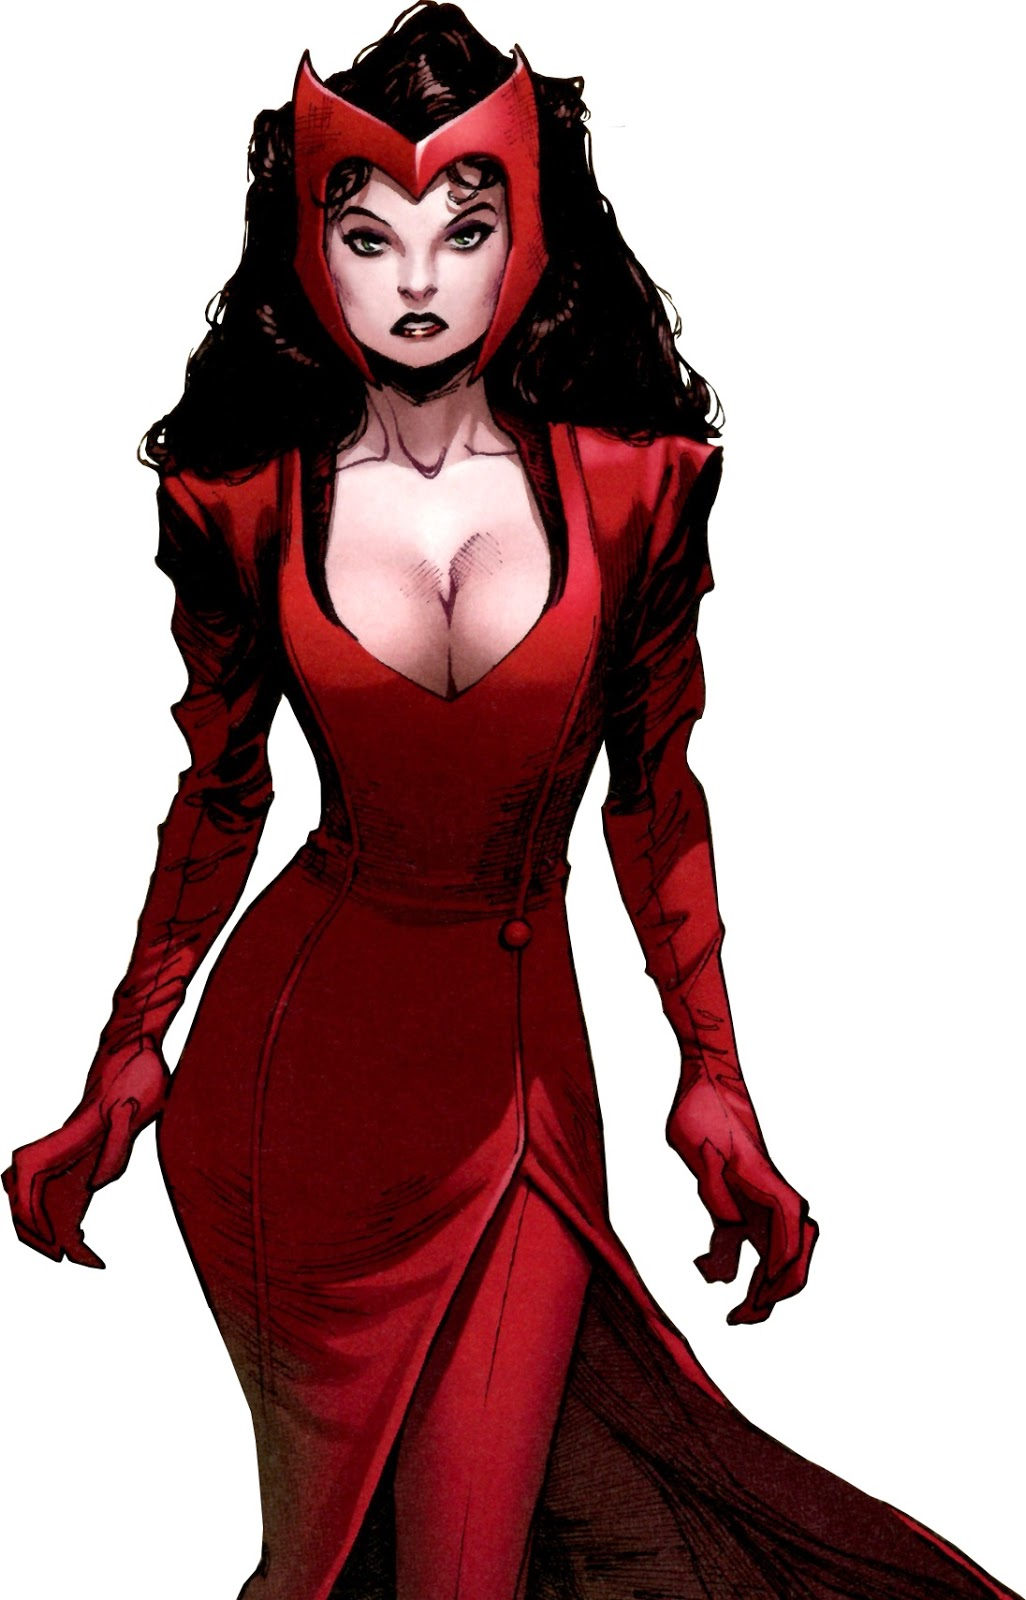 Scarlet Witch - Marvel Comics